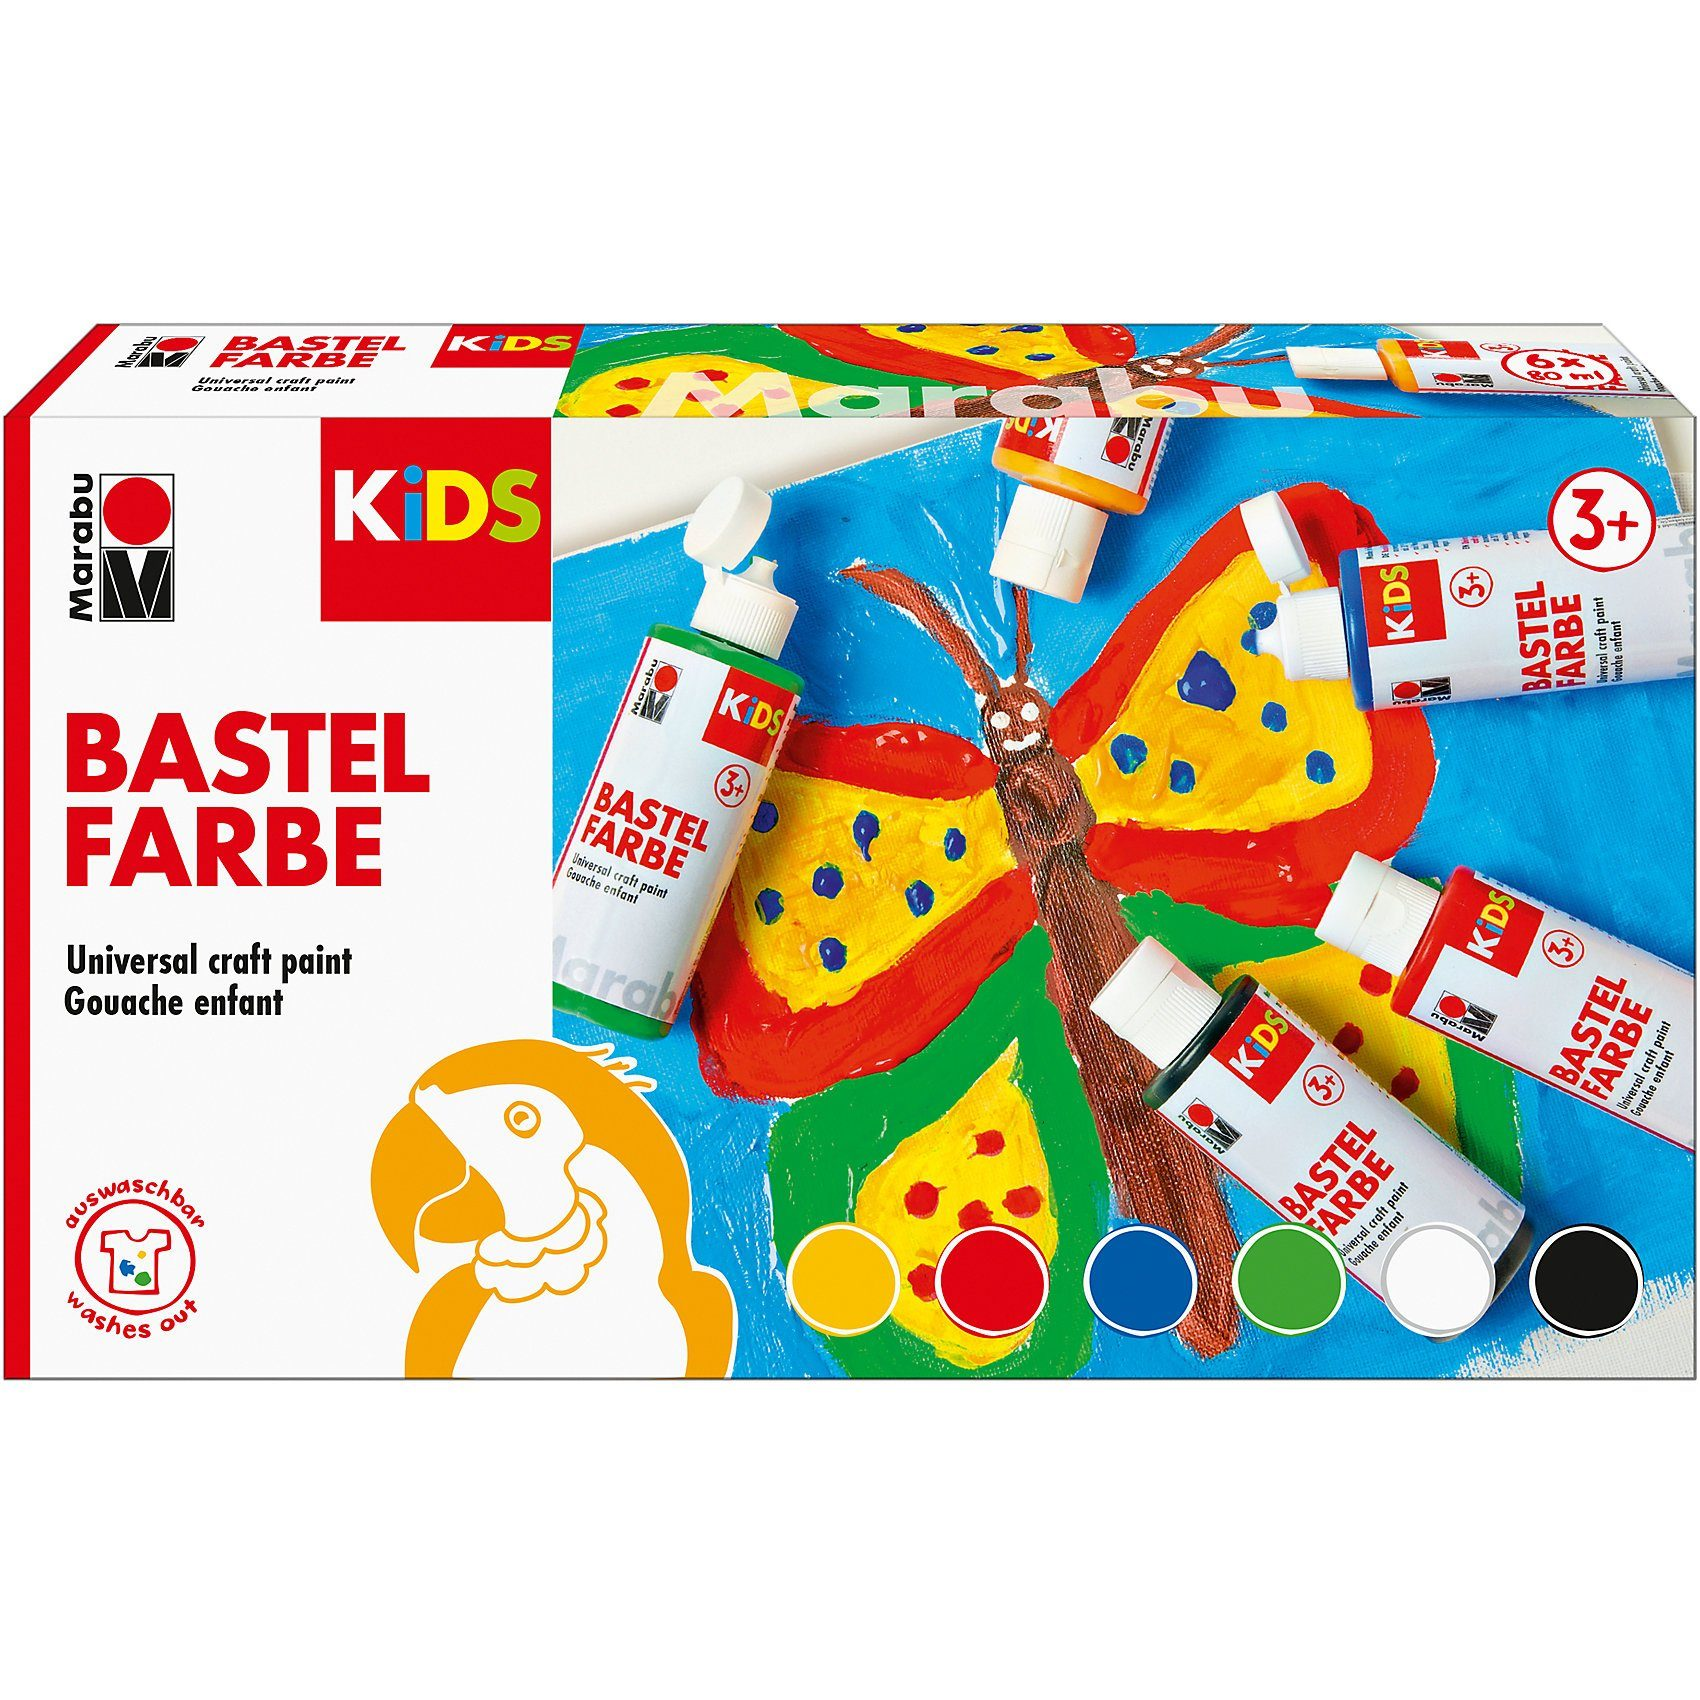 Marabu KIDS Bastelfarbe, 6 x 80 ml